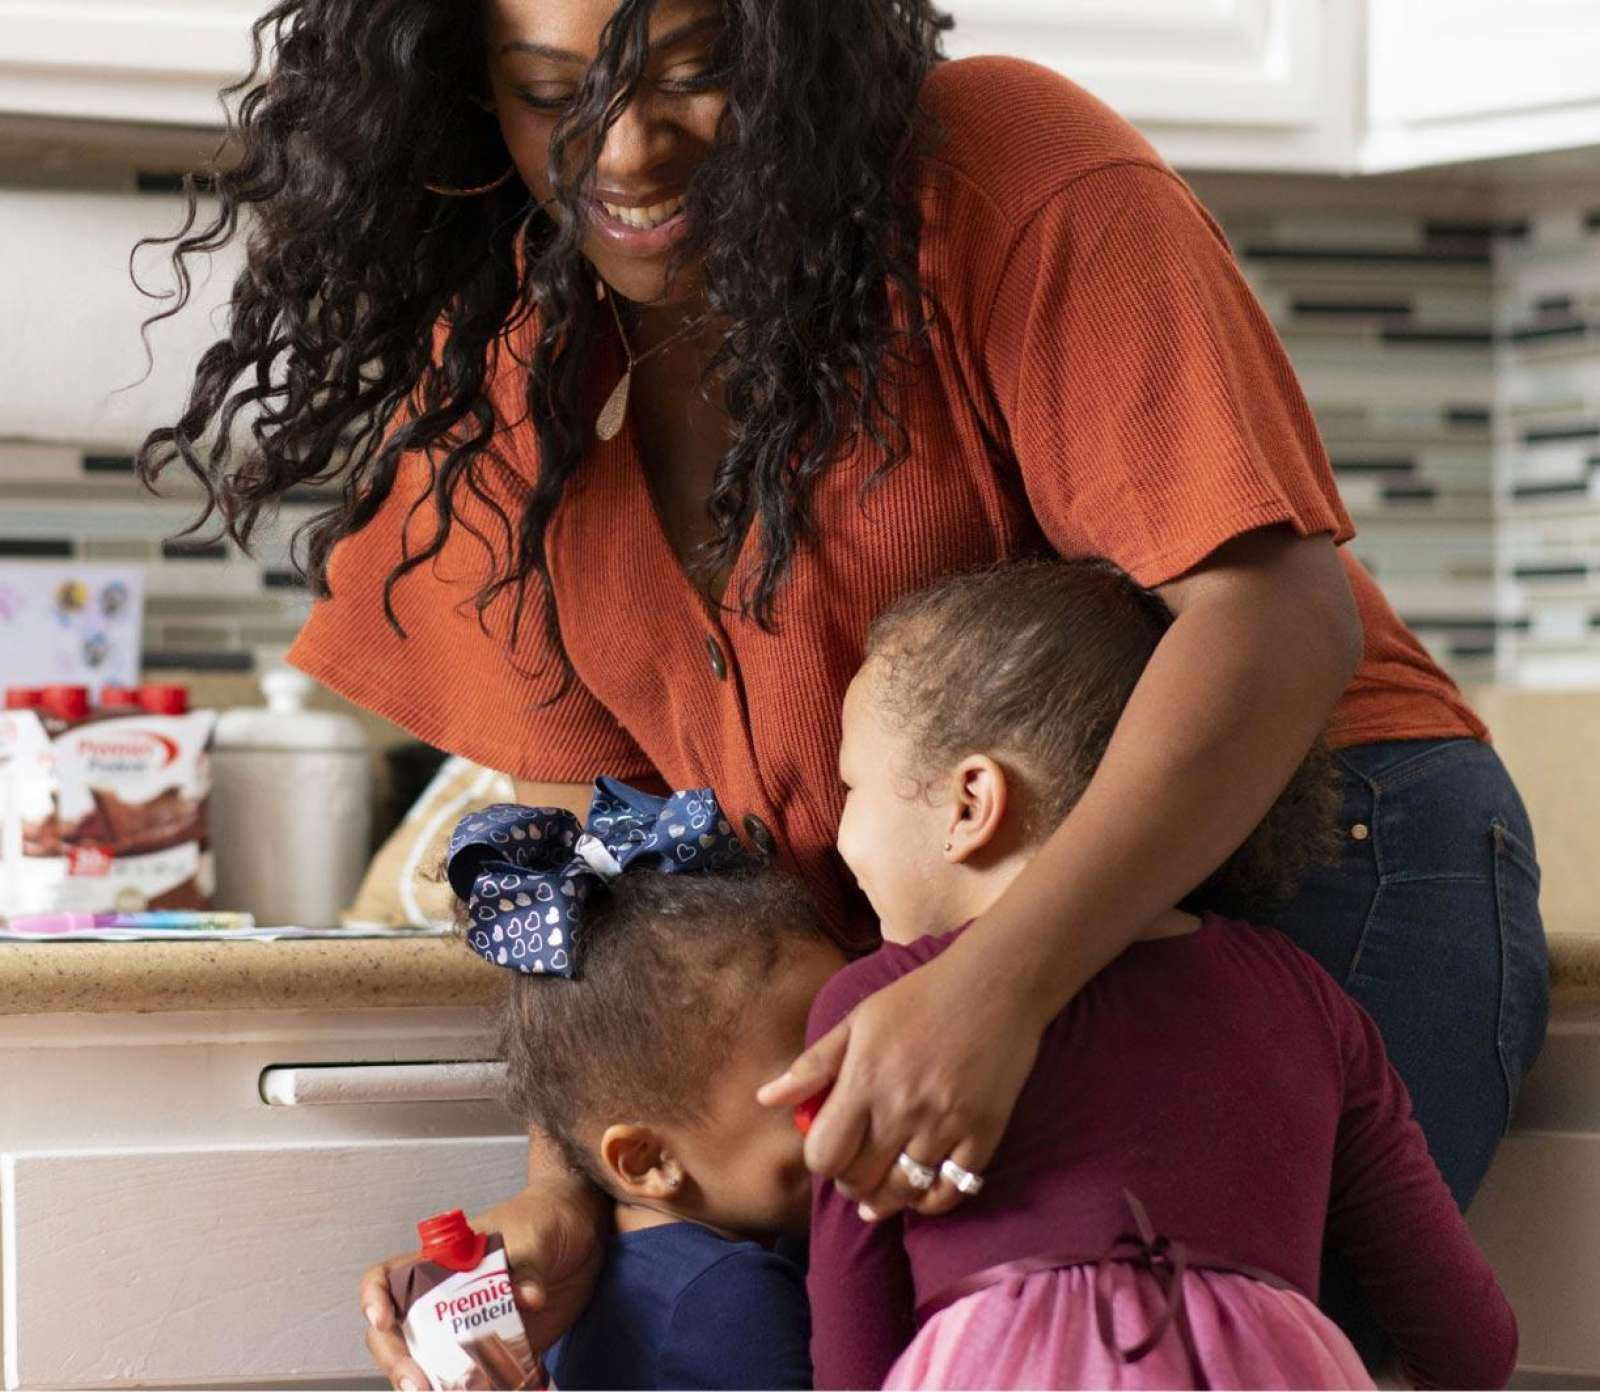 A women hugging her active kids while in her kitchen.